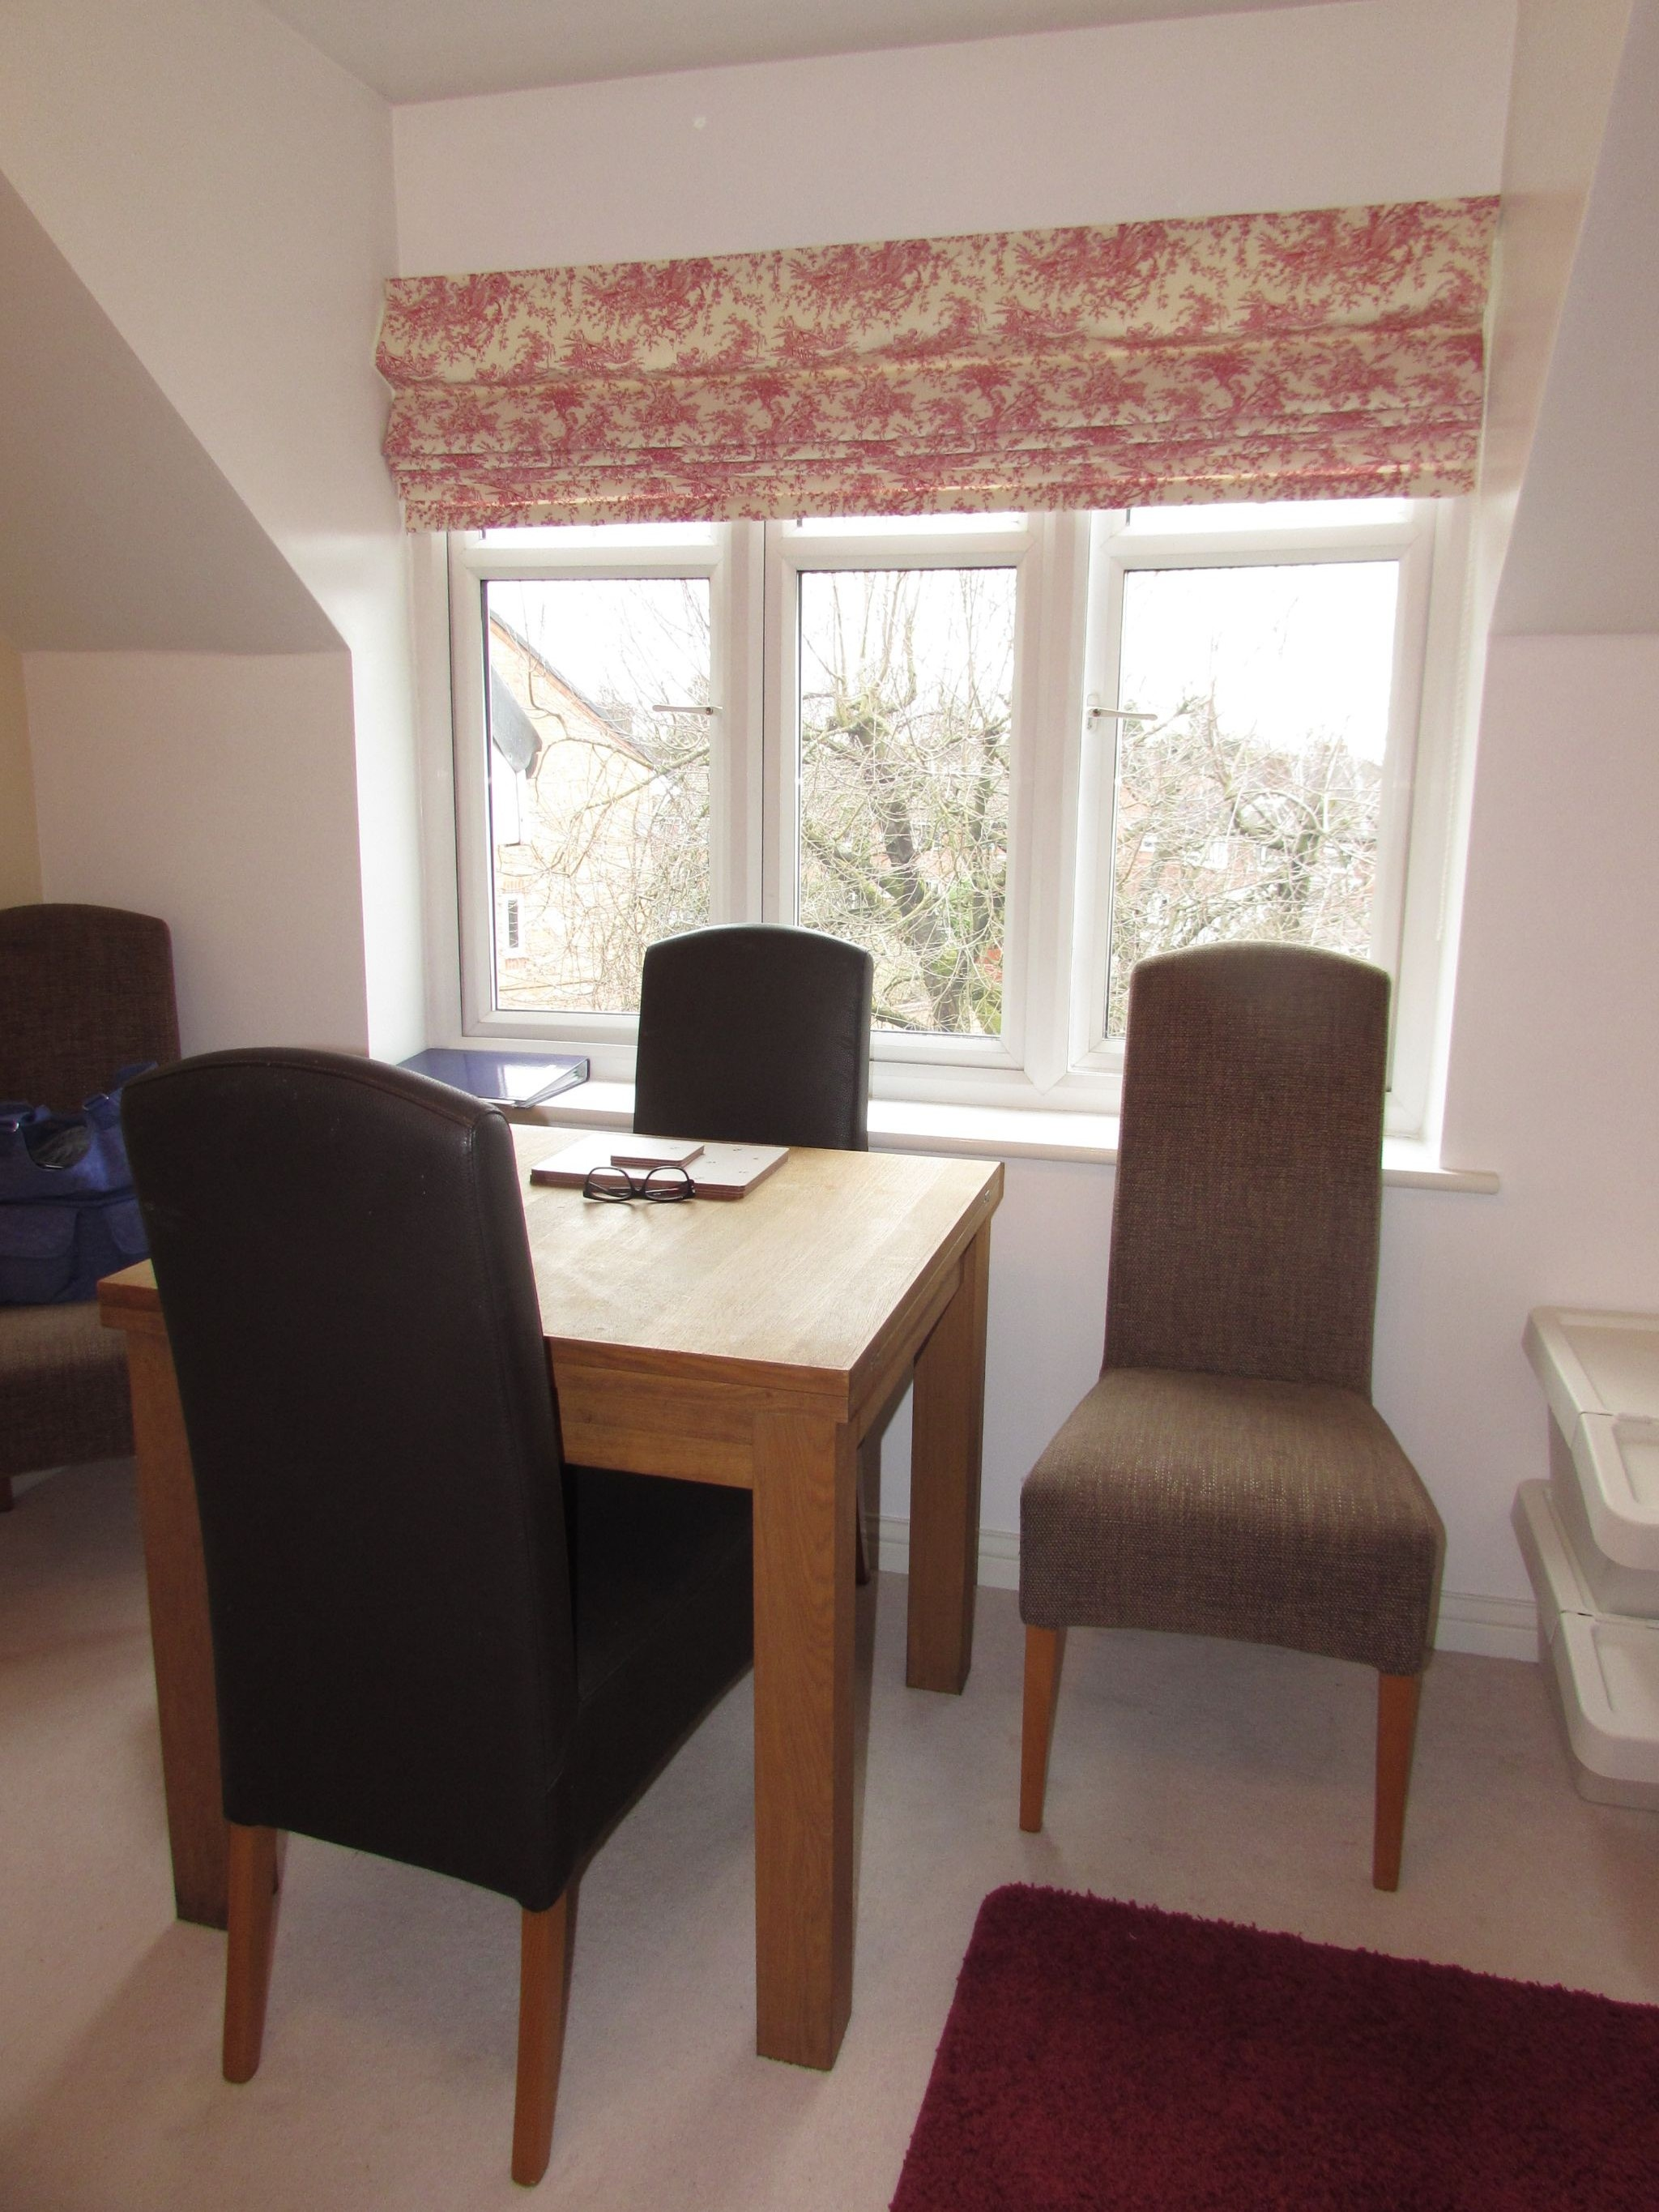 1 Bedroom Shared Flat/apartment To Rent - Photograph 8